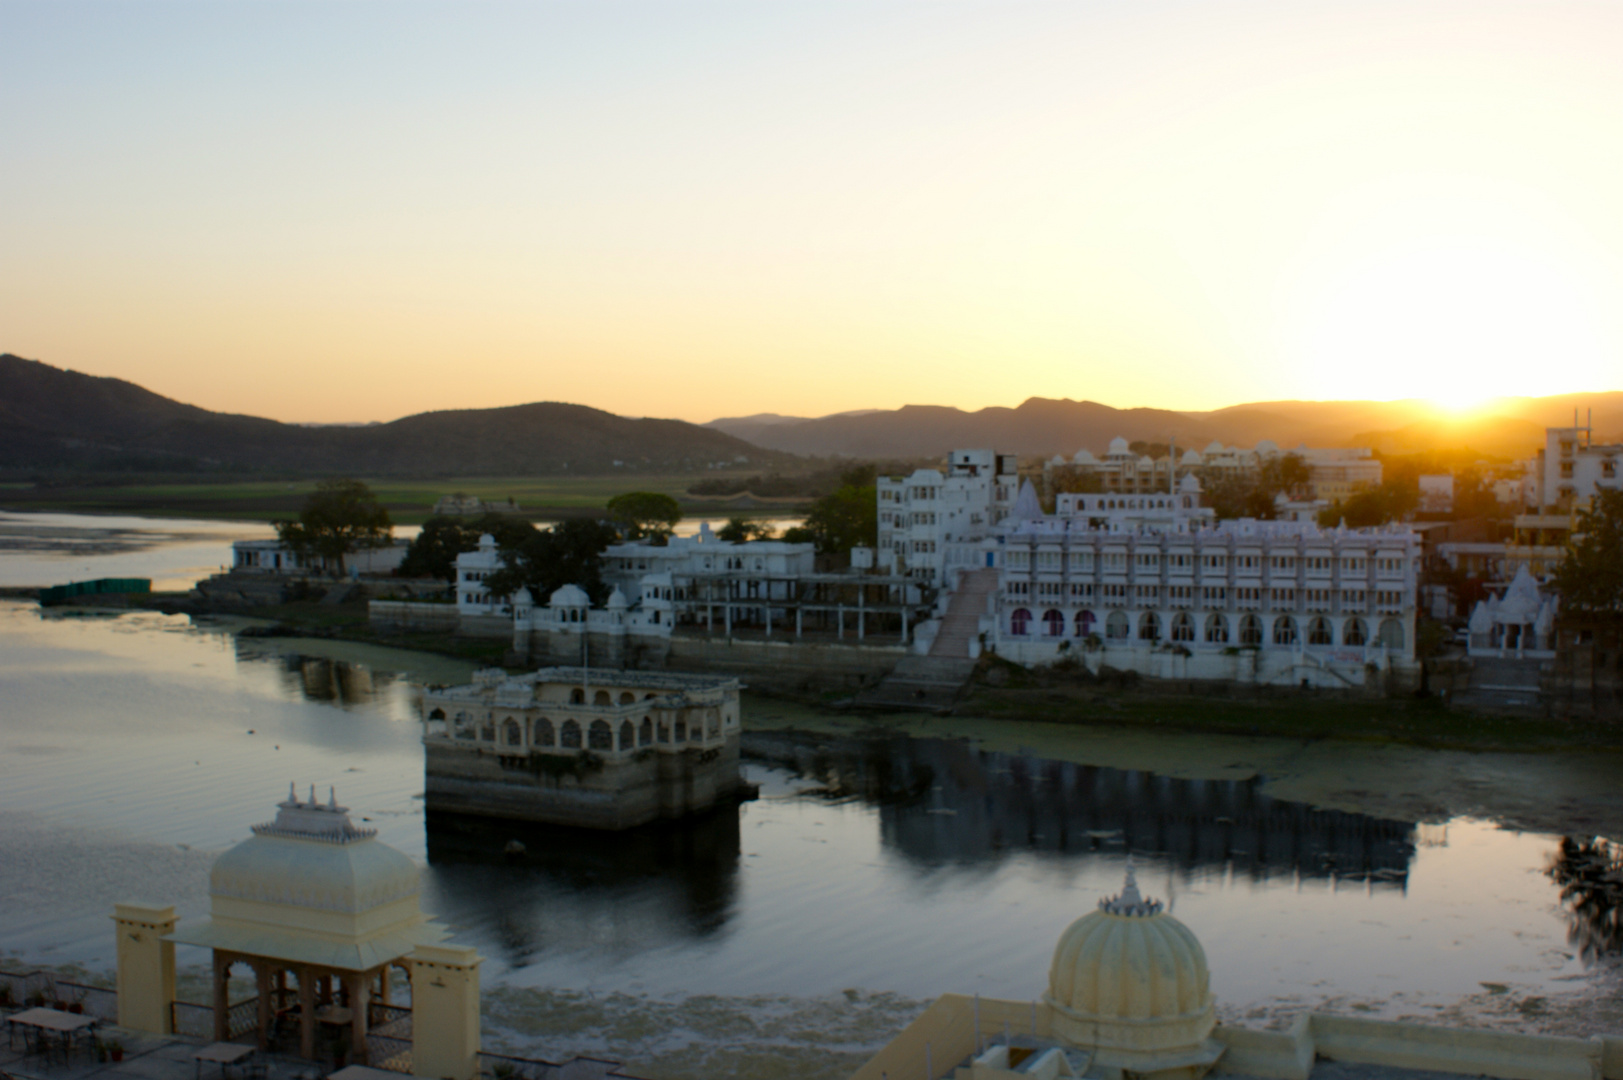 Evening at Lake Pichola, Udaipur, seen from the Terrace of Tiger Hotel